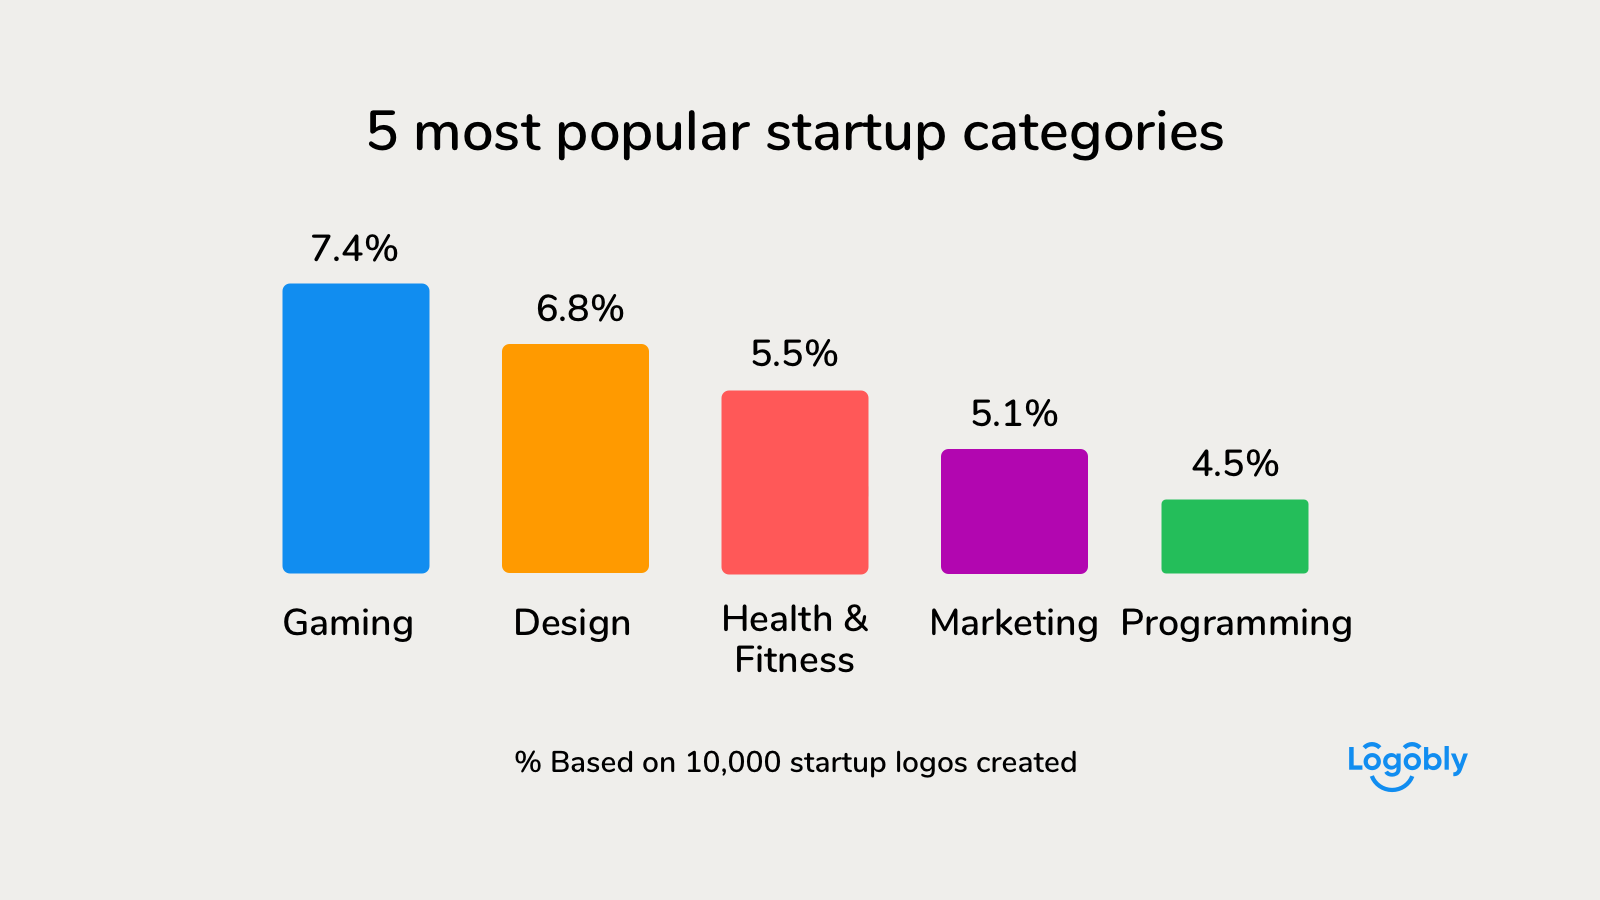 5 most popular startup categories